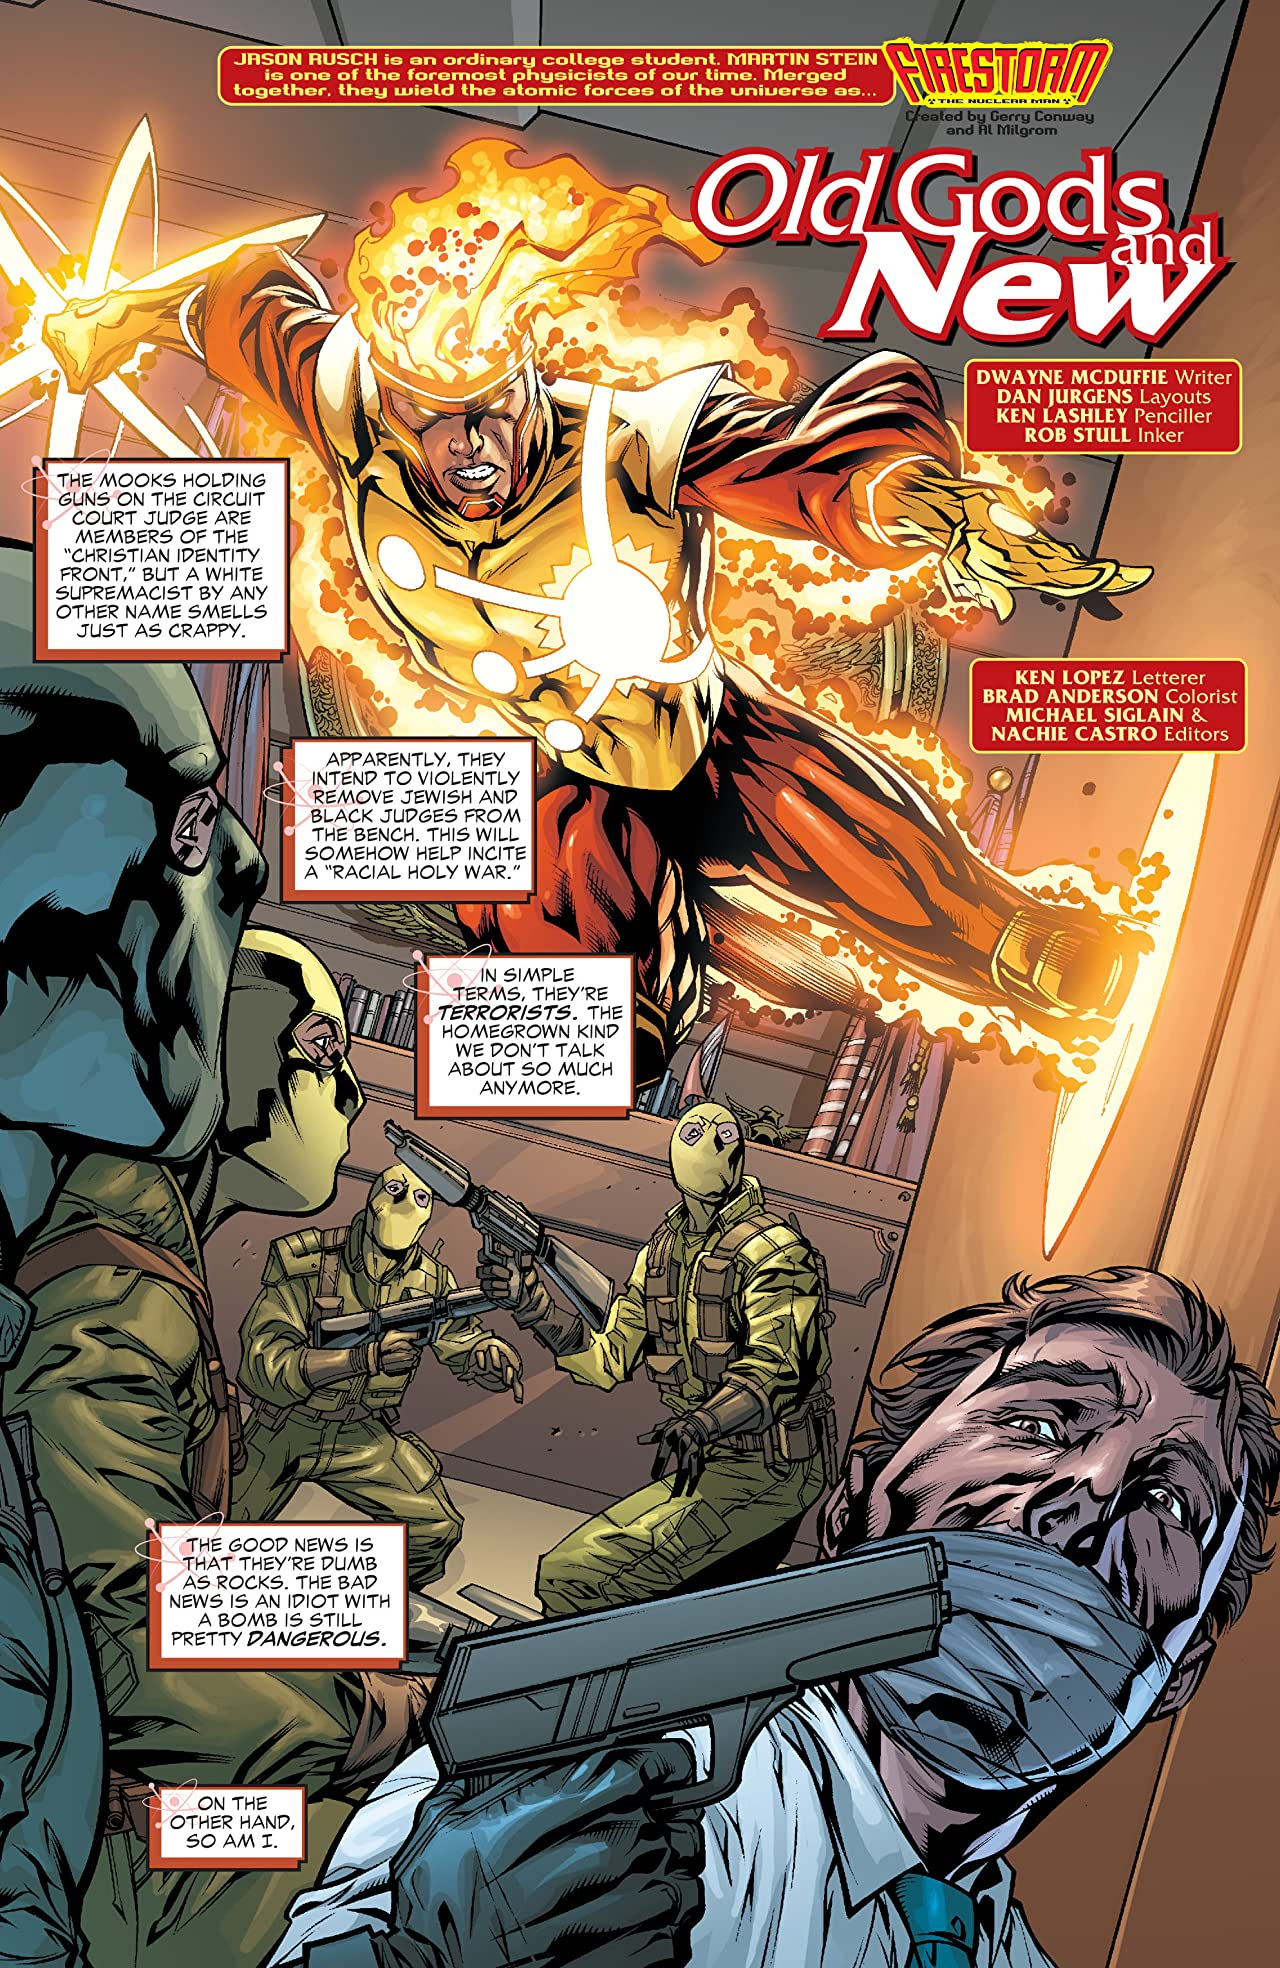 Firestorm: The Nuclear Man (2004-2007) #33